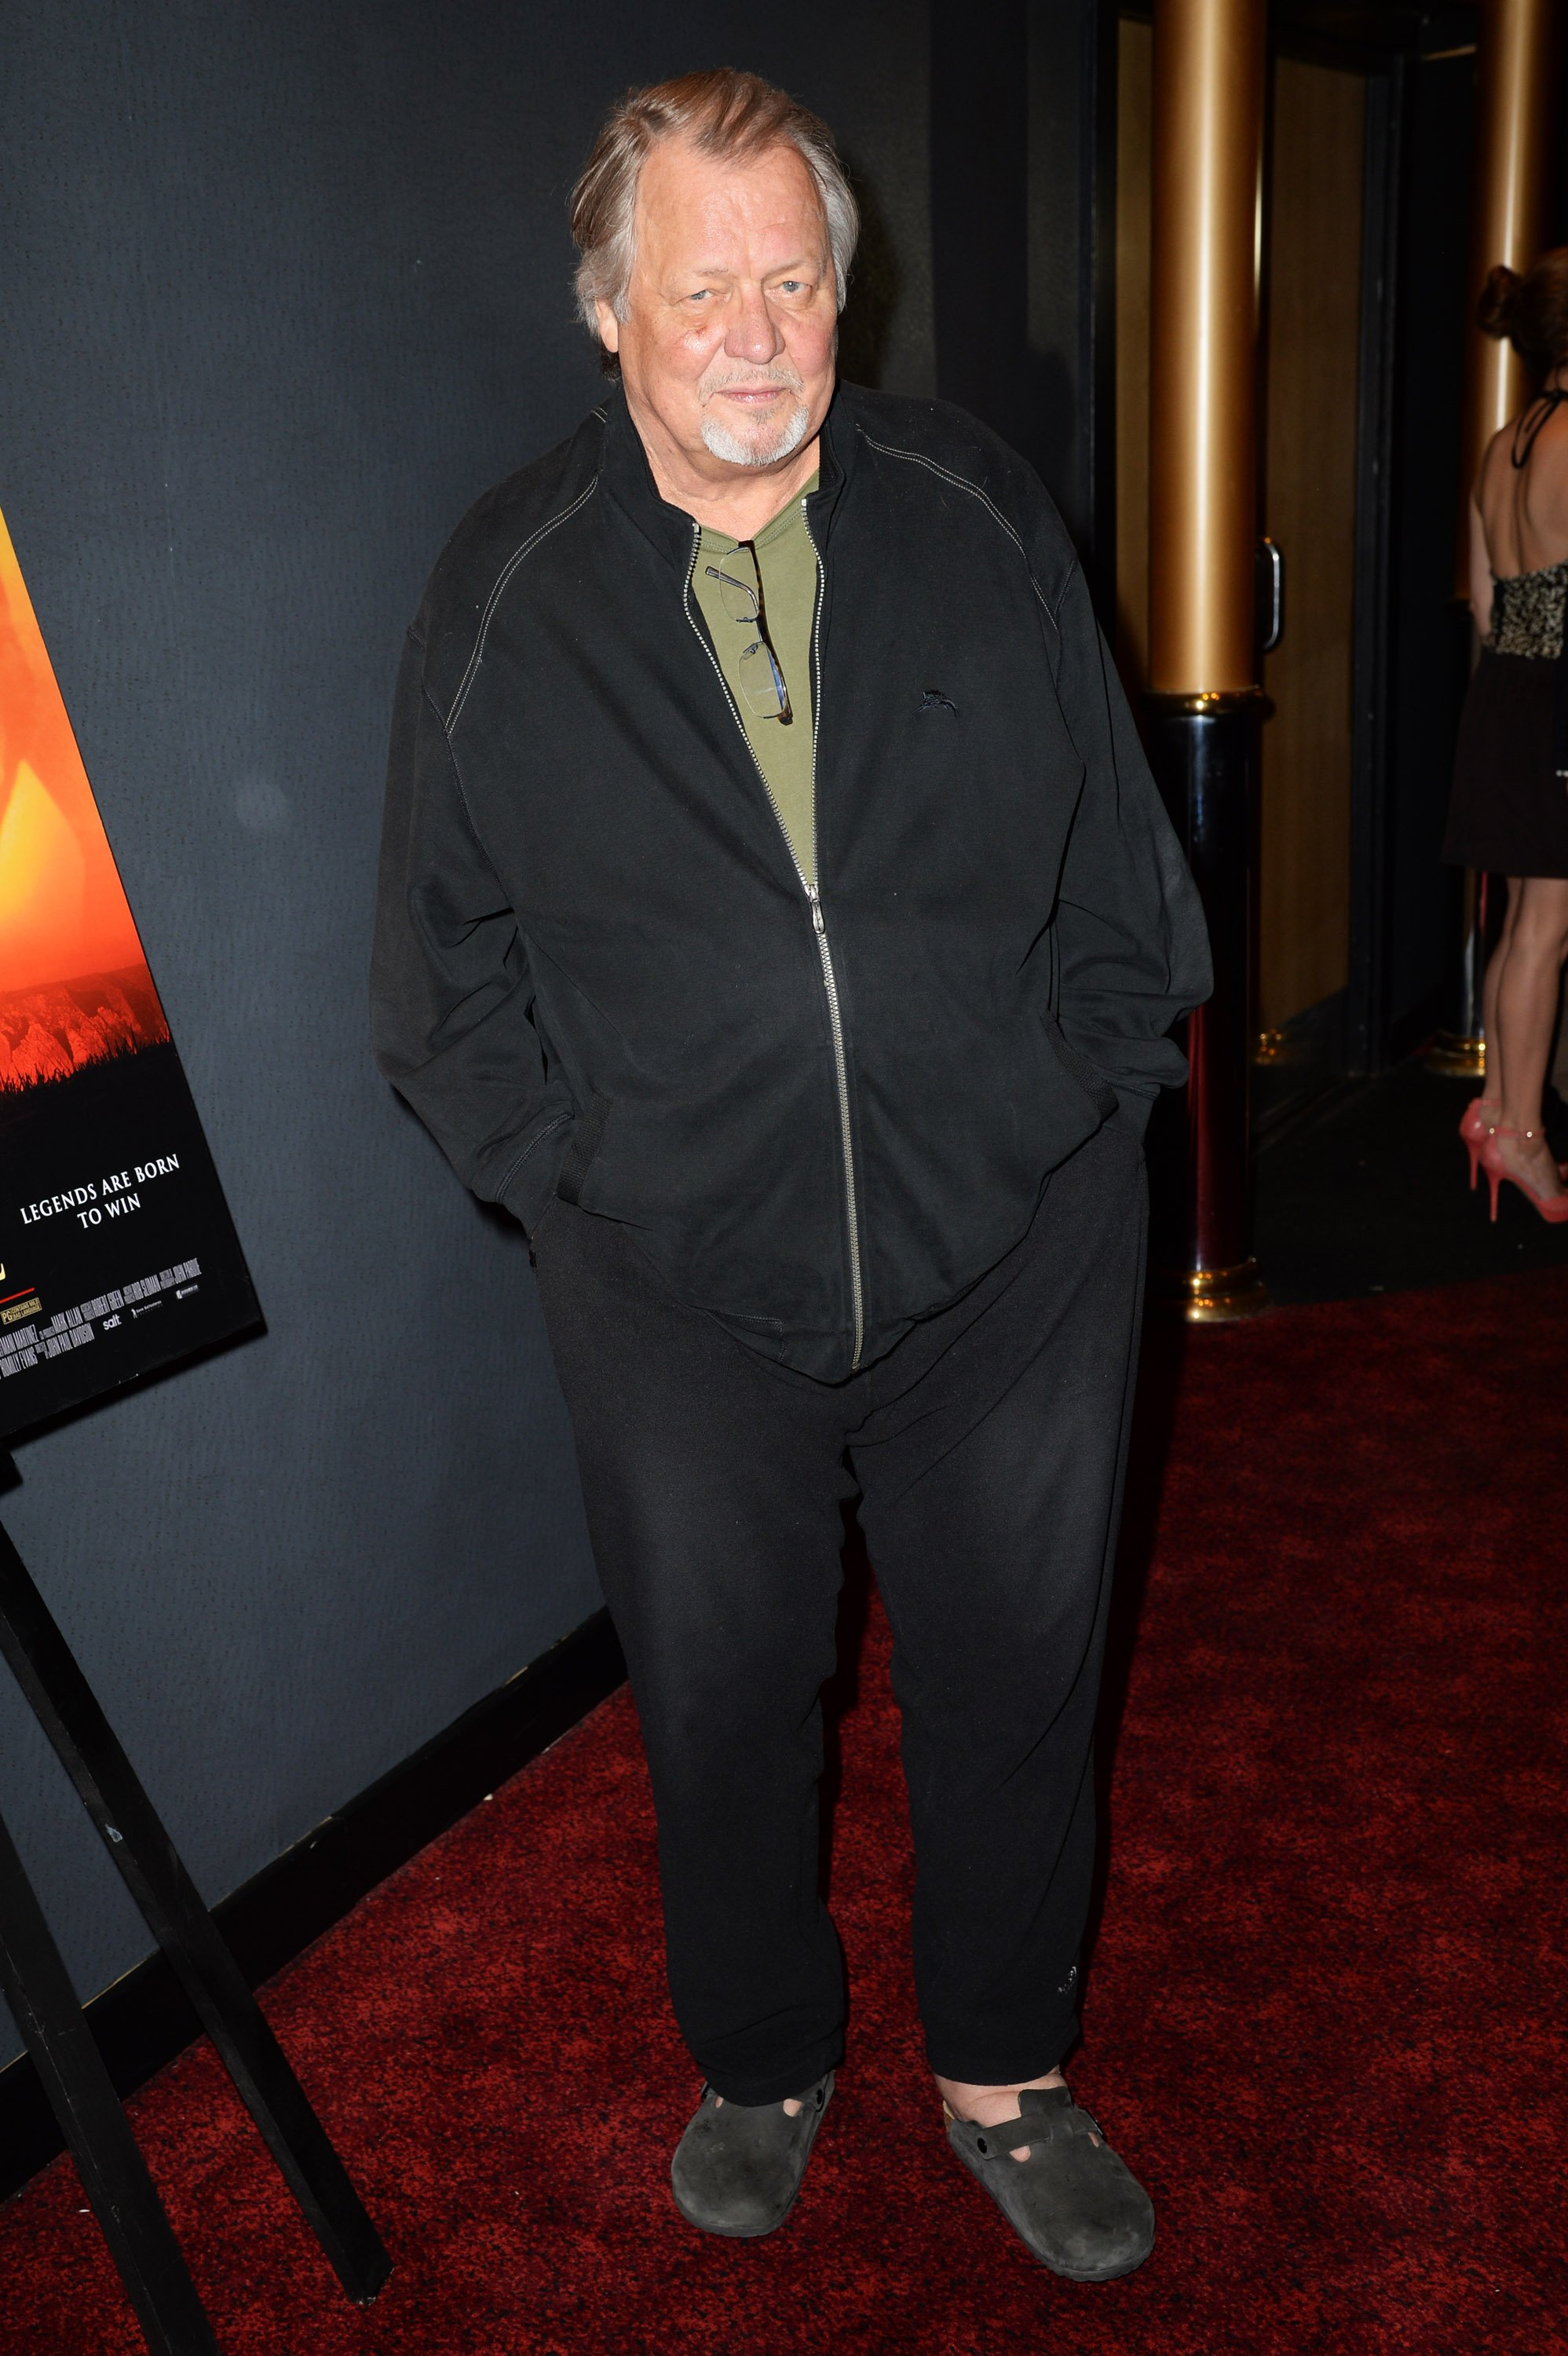 David Soul attends the world premiere of 'Seve' at The Empire Leicester Square on June 23, 2014 | Photo: GettyImages